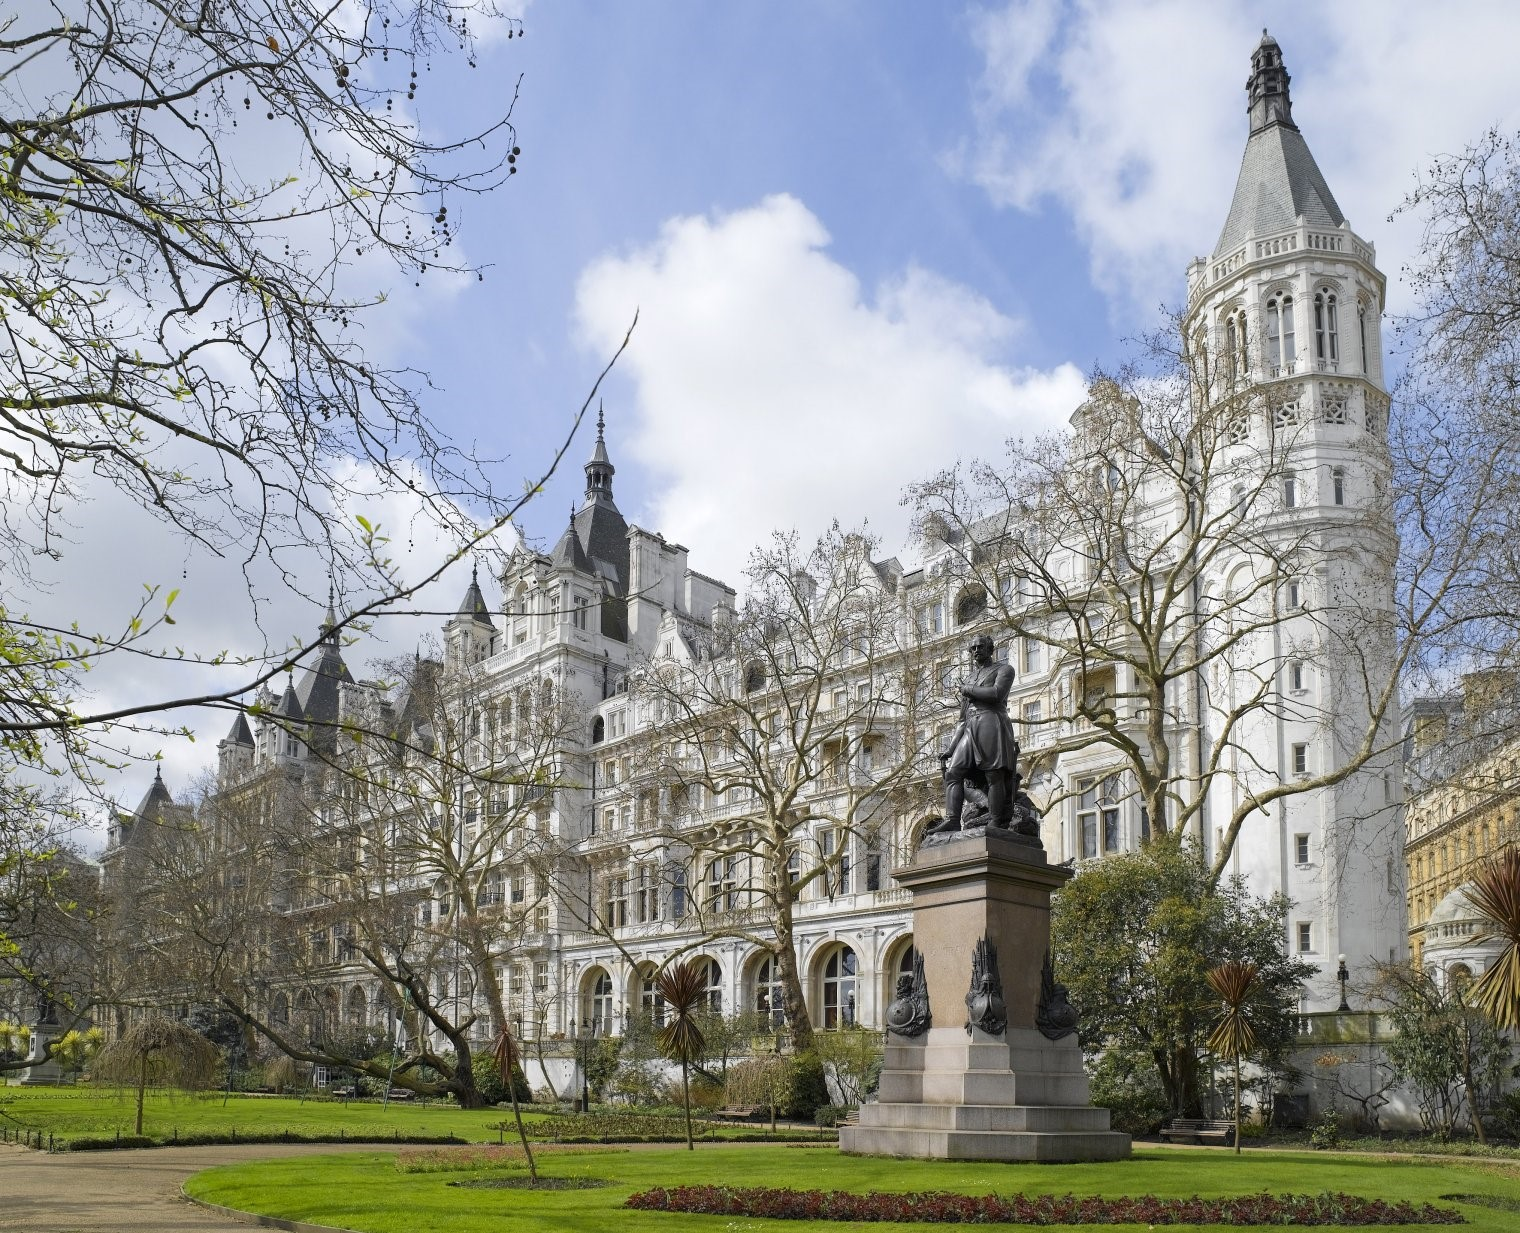 One Whitehall Place / The Royal Horseguards